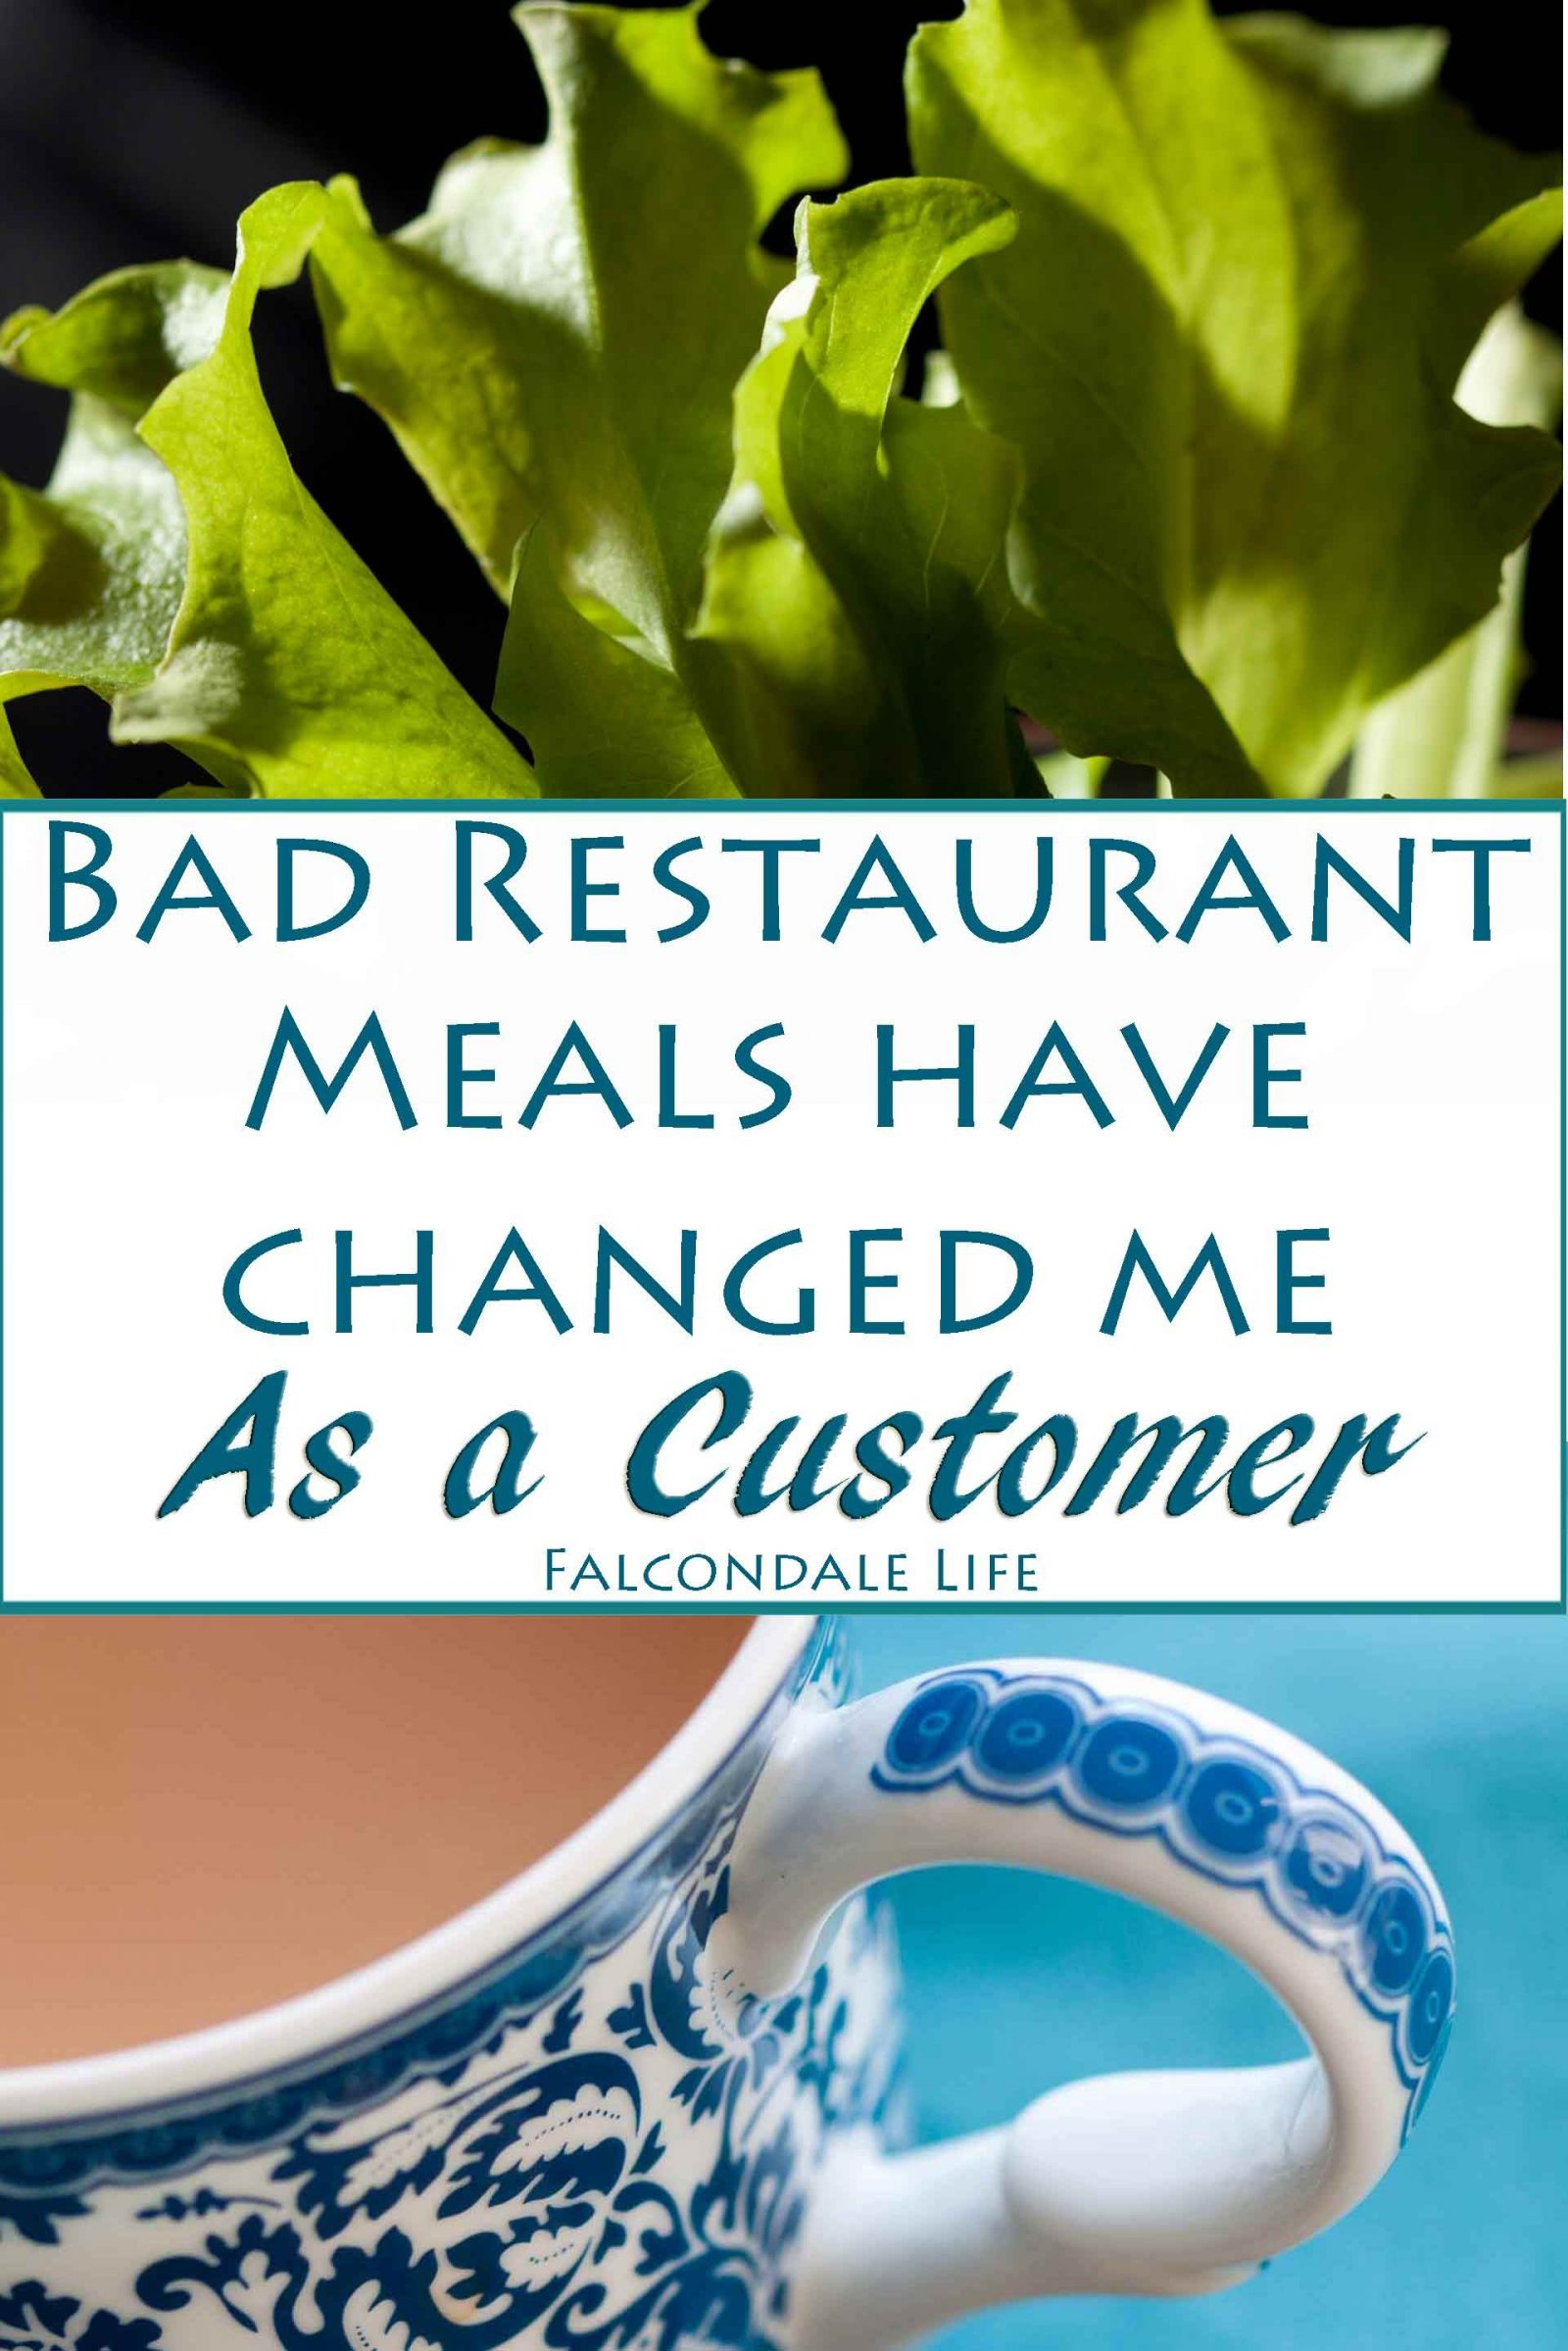 How bad restaurant meals have changed me as a customer